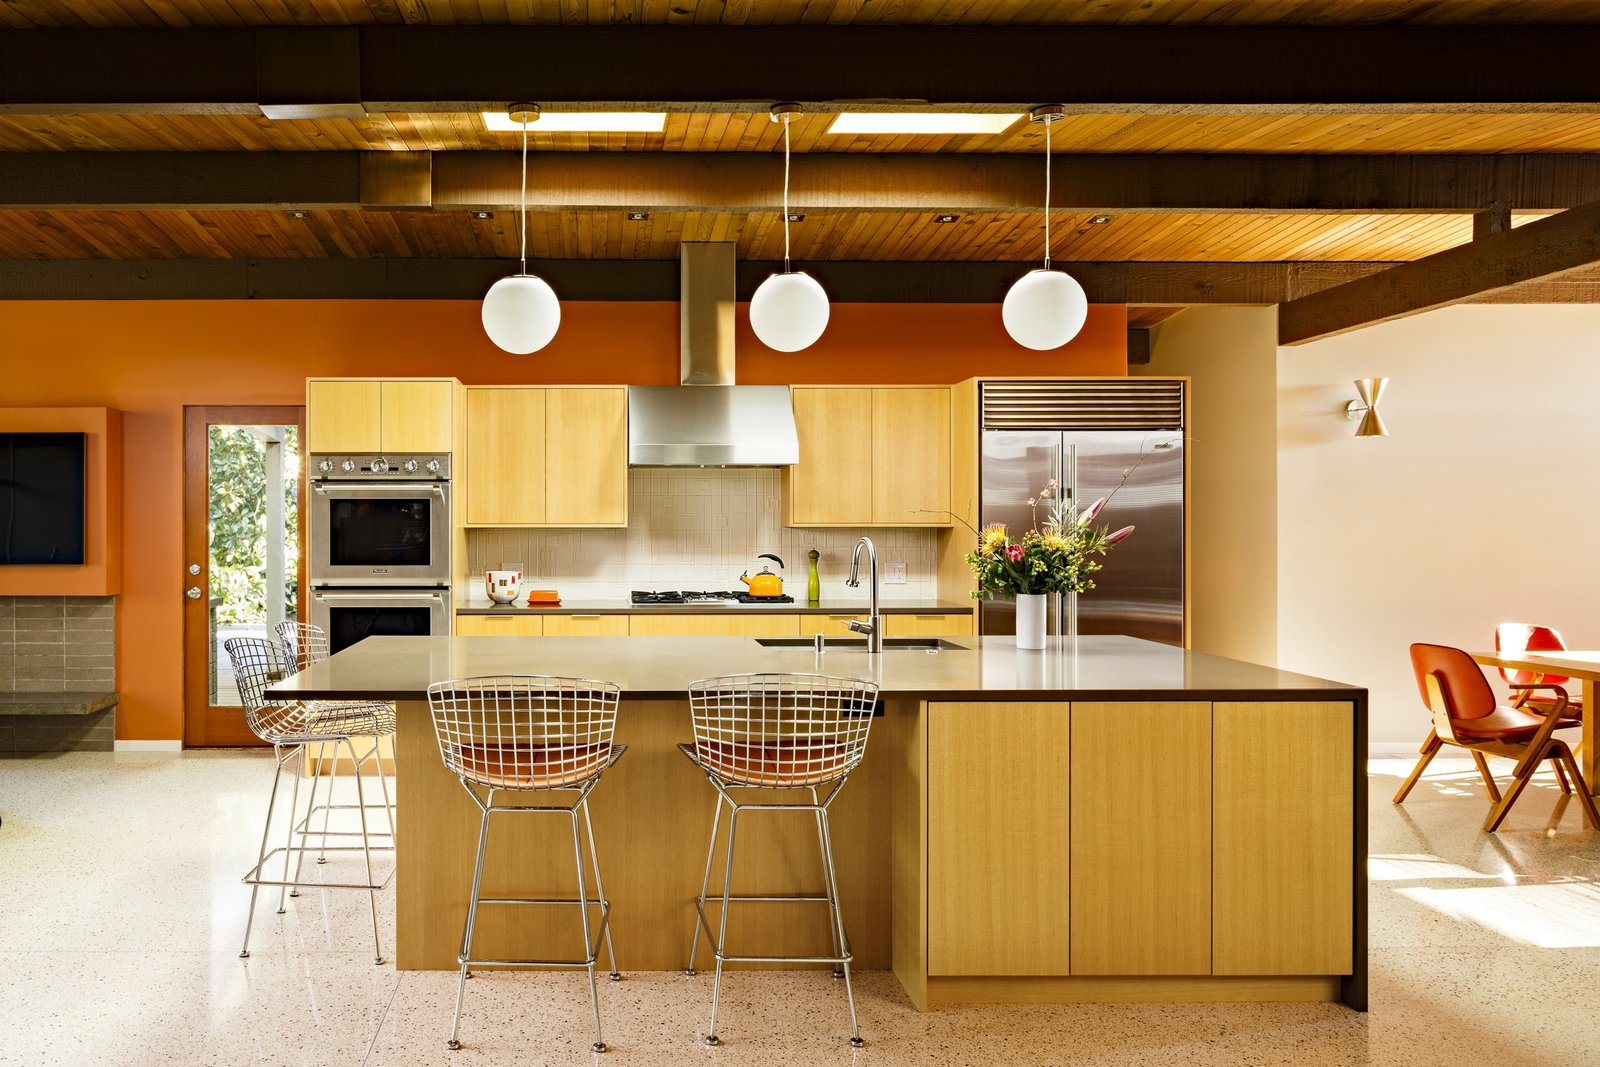 Kitchen, Wood Cabinet, Cooktops, Terrazzo Floor, Wall Oven, Engineered Quartz Counter, Range, Range Hood, Refrigerator, and Pendant Lighting The retrofit of this Portland midcentury-modern home takes inspiration from Richard Neutra, Saul Zaik, and John Yeon.    Best Photos from Acclaimed Architect Risa Boyer Reinvents Indoor/Outdoor Living